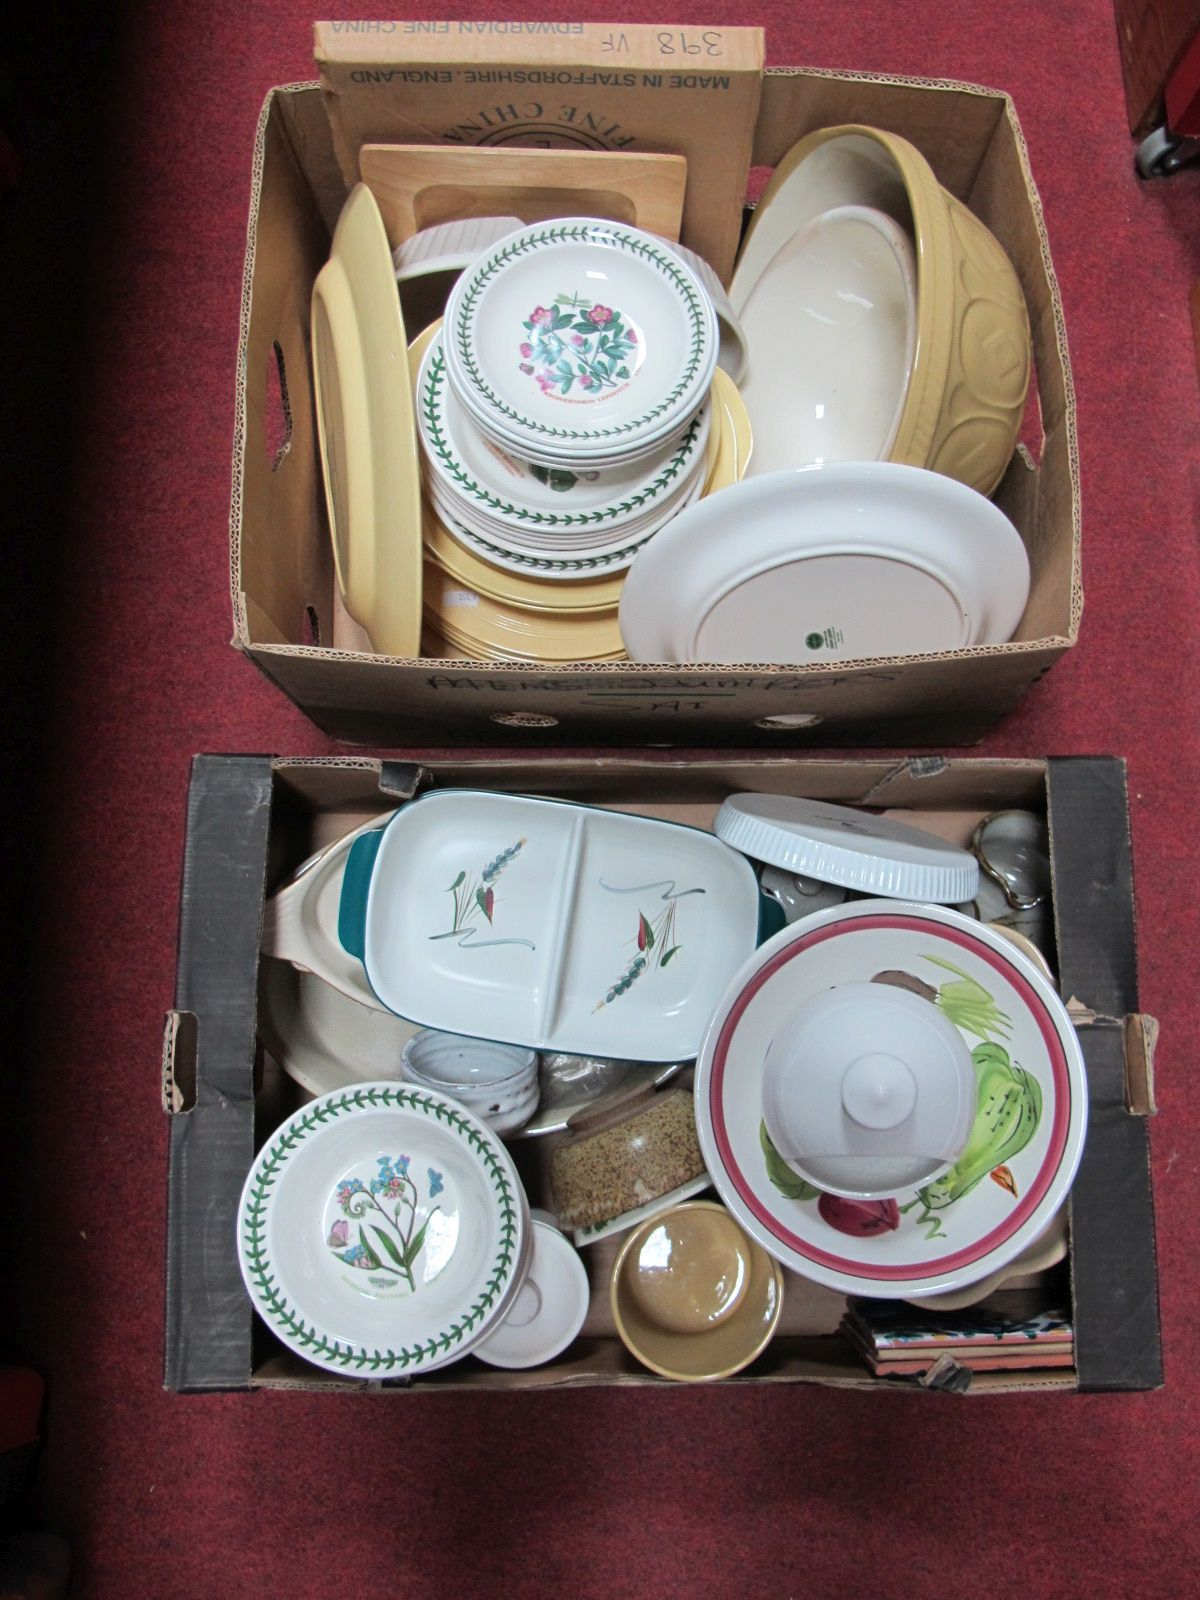 Lot 17 - Portmeirion 'Botanic Garden', Wood's 'Jasmine', T.G.Green mixing bowls, Denby and other pottery:-